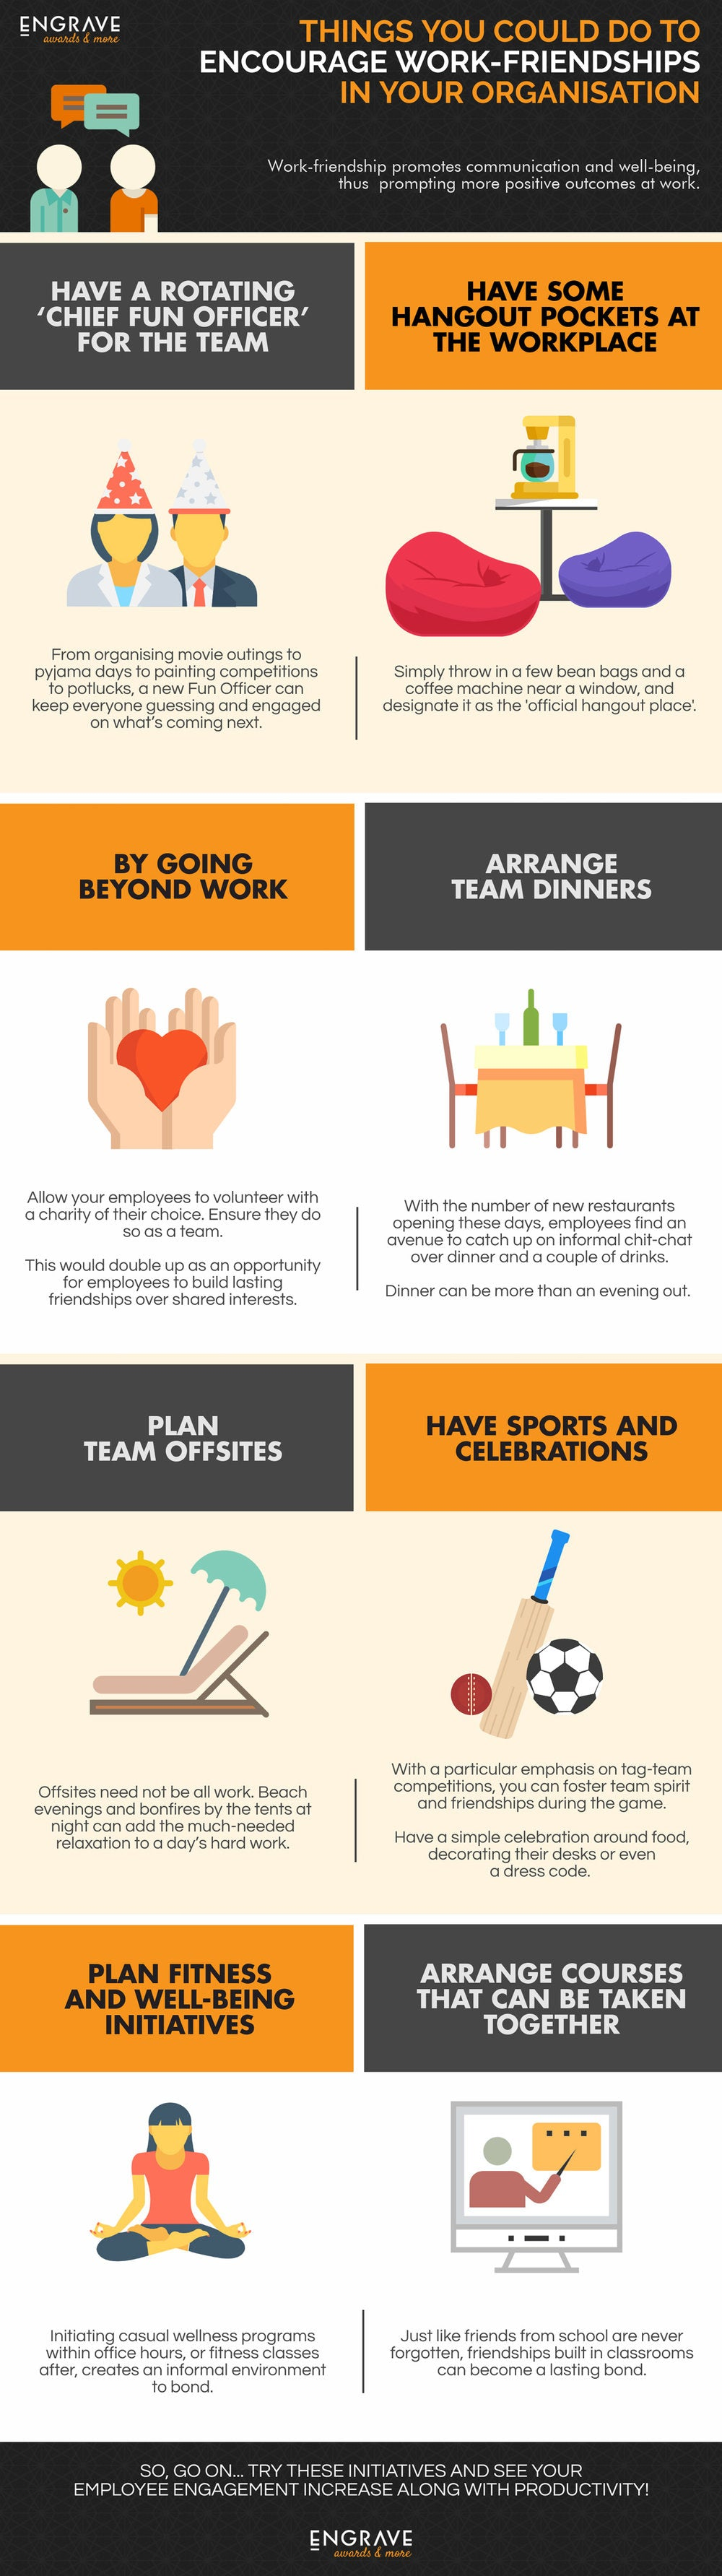 Things you can do to create an informal environment to encourage work-friendships